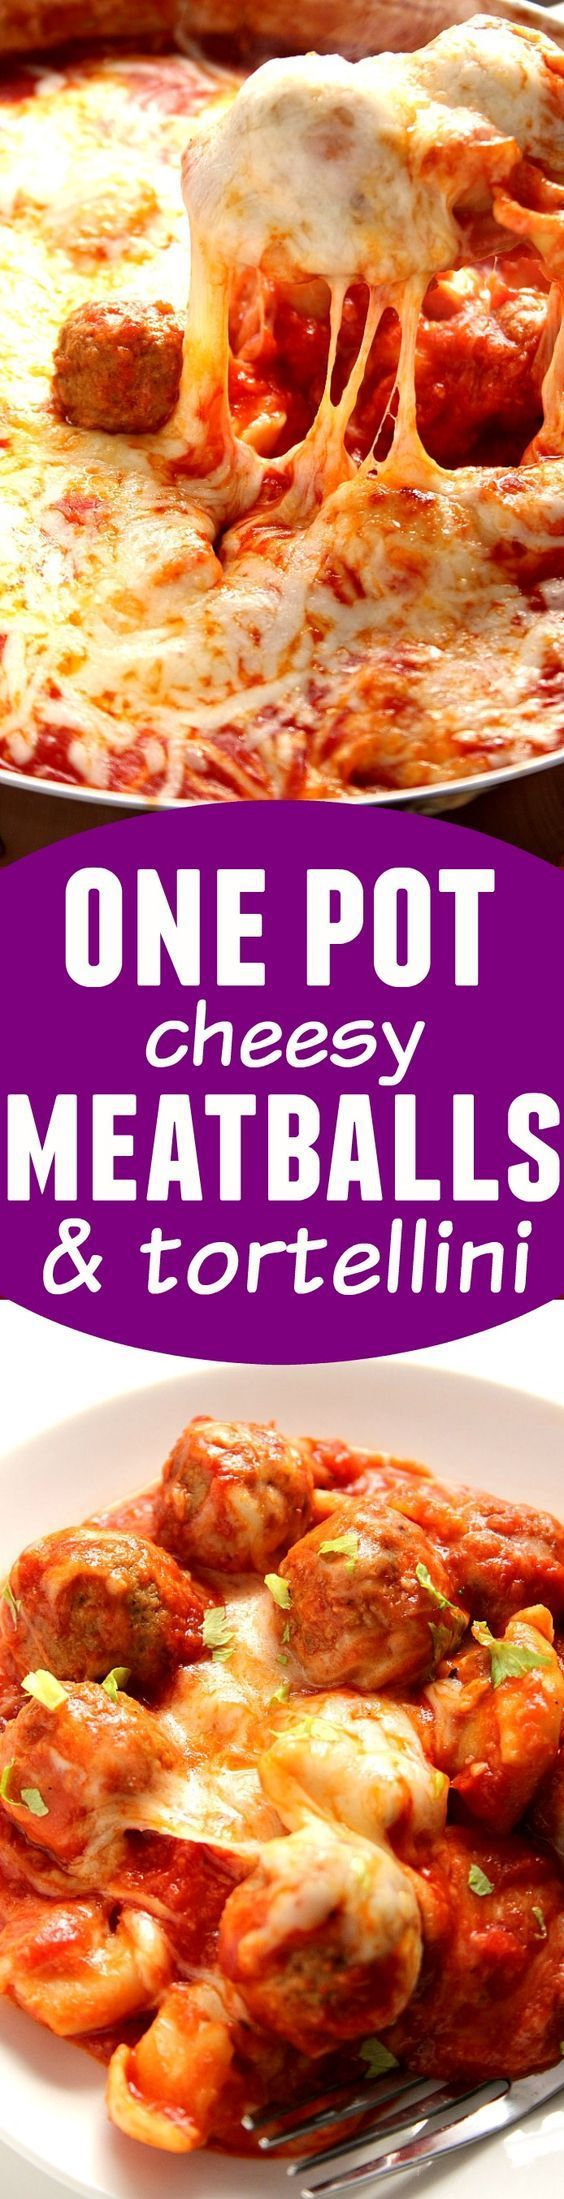 One Pot Cheesy Tortellini and Meatballs Recipe - easy weeknight meal that your family will love! Cheesy, saucy and made with just a few ingredients!